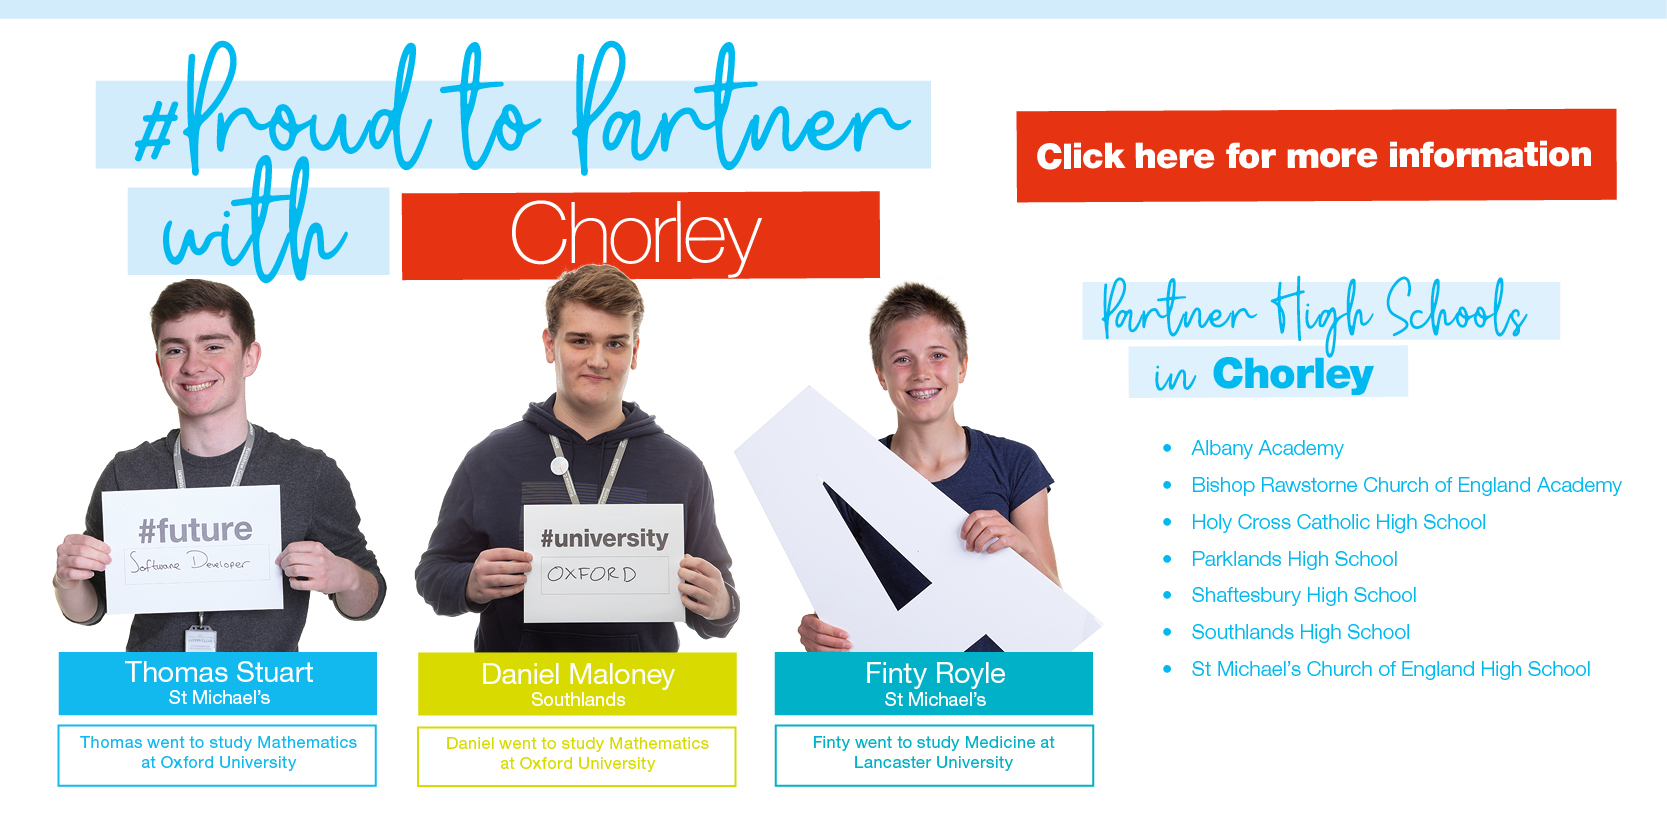 Proud to Partner with Chorley... Click HERE for more information Thumbnail